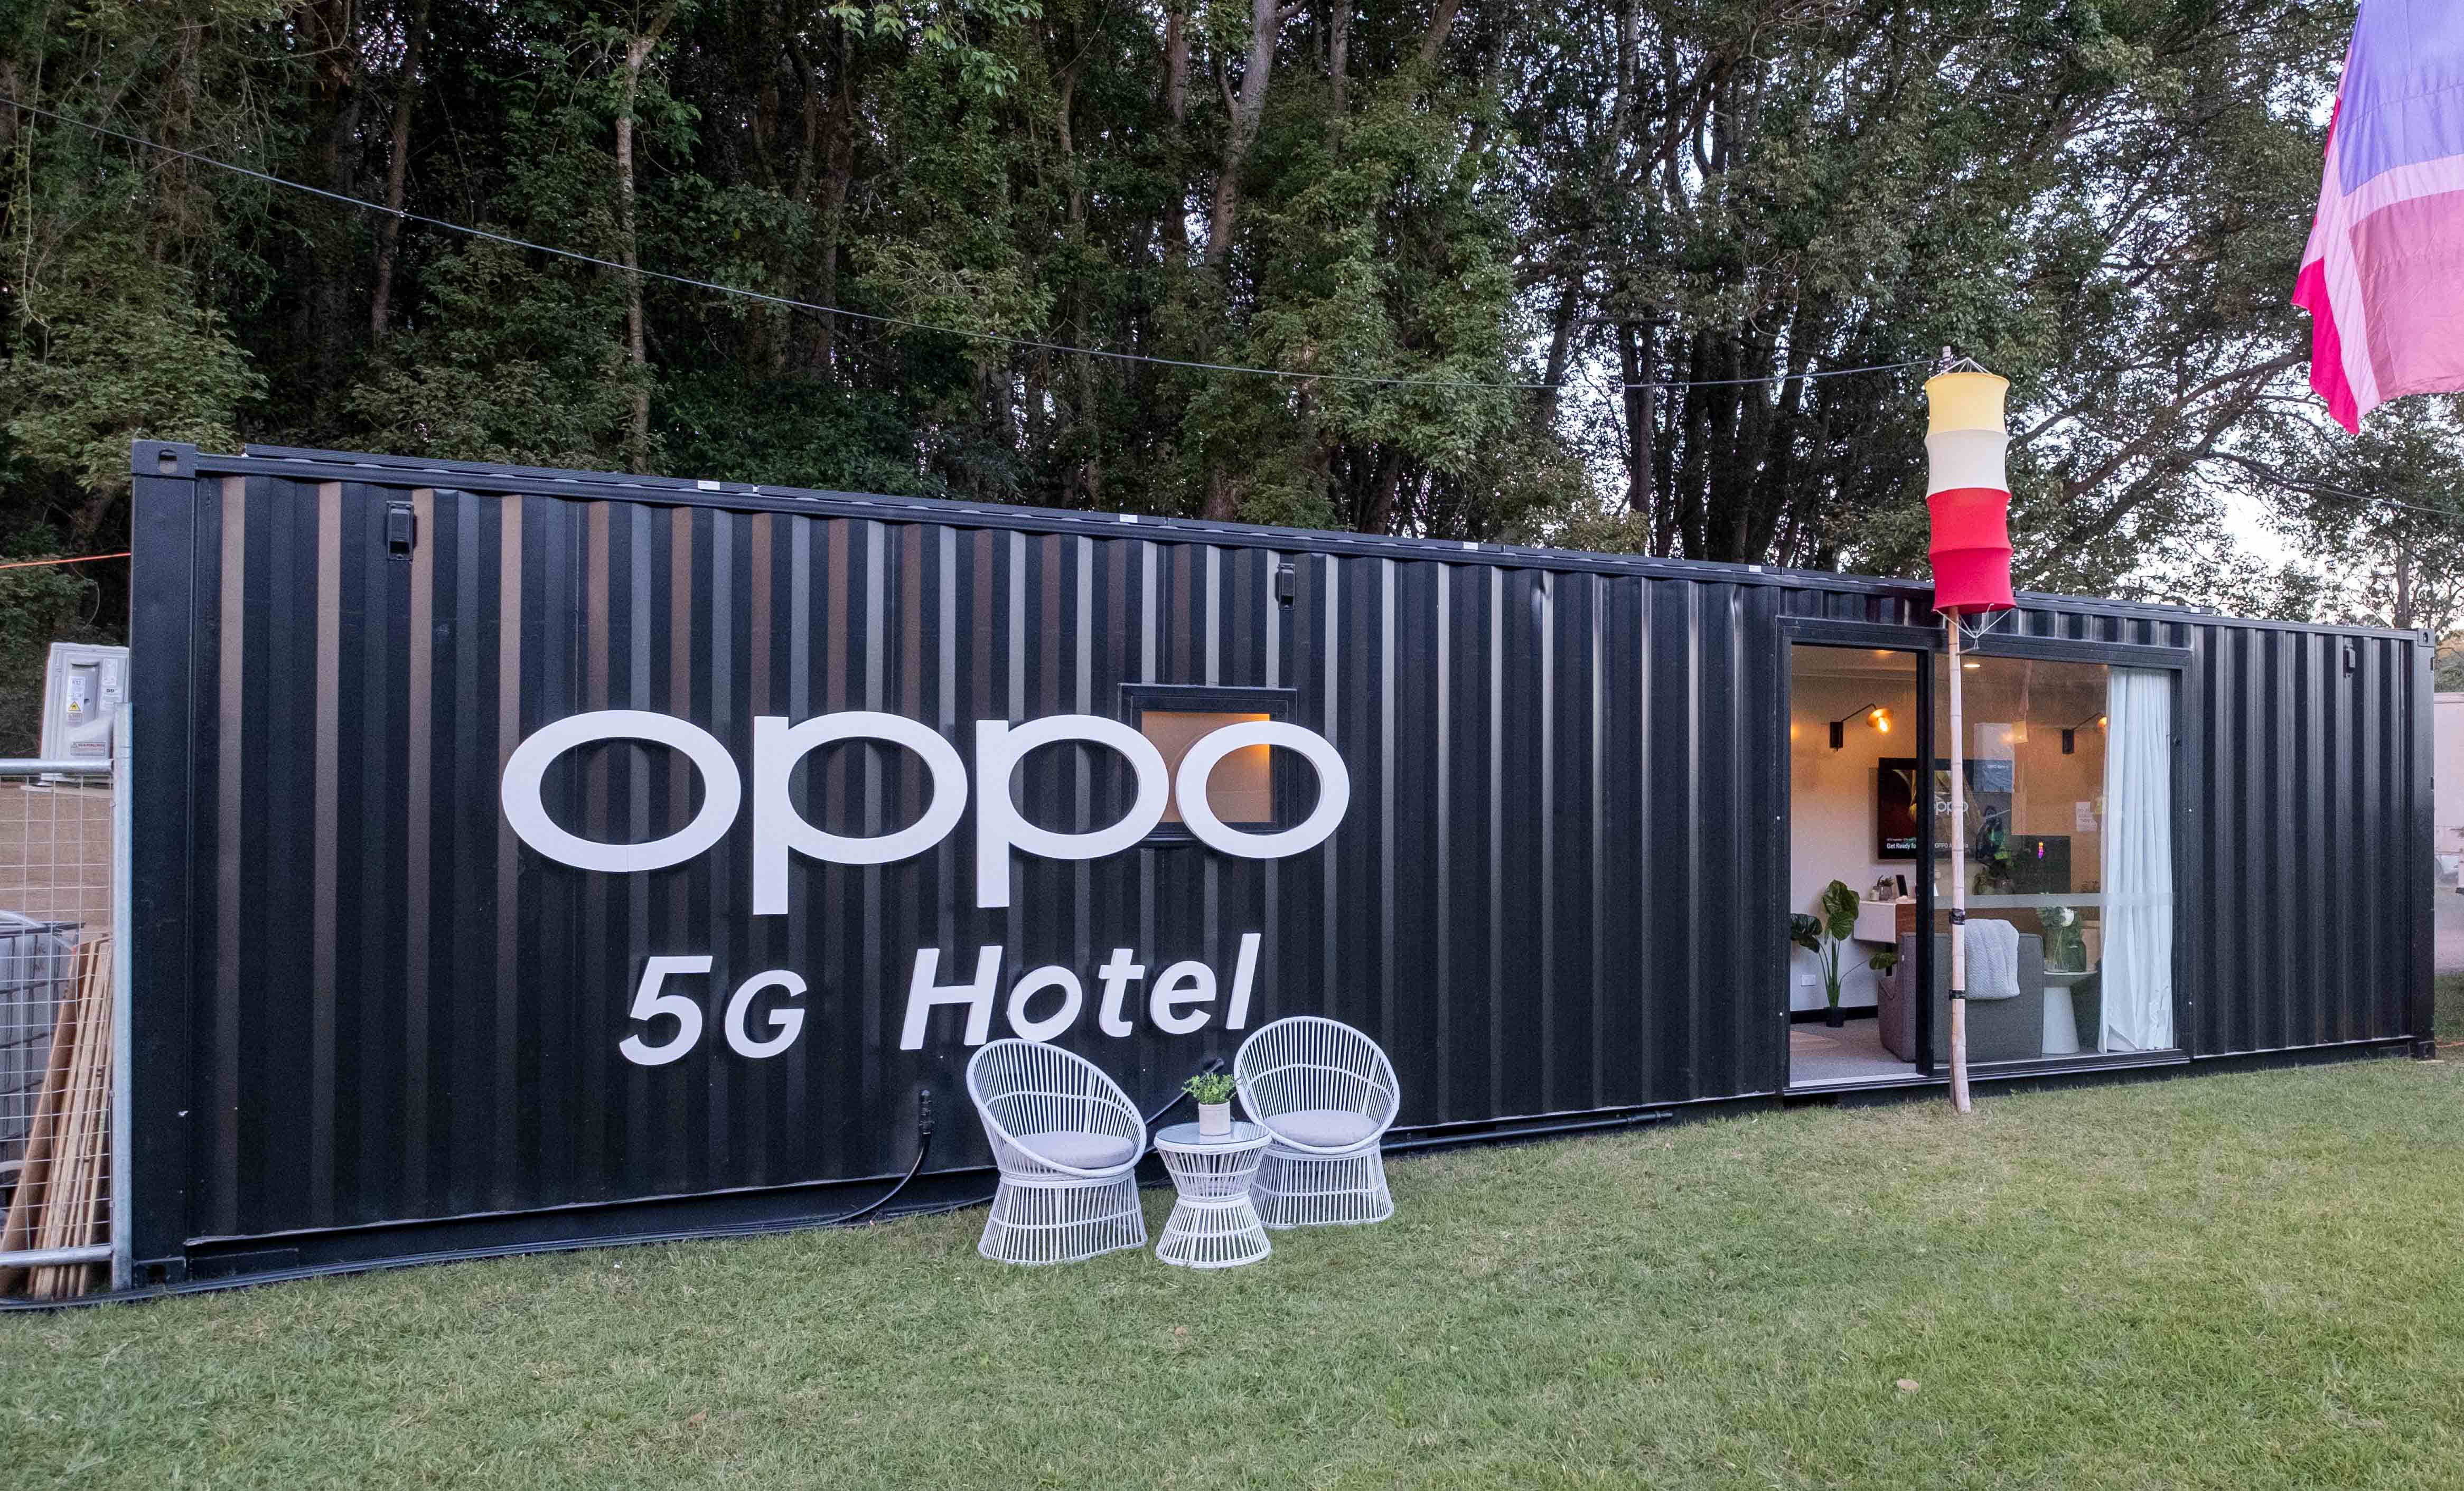 Oppo 5G Hotel Overview